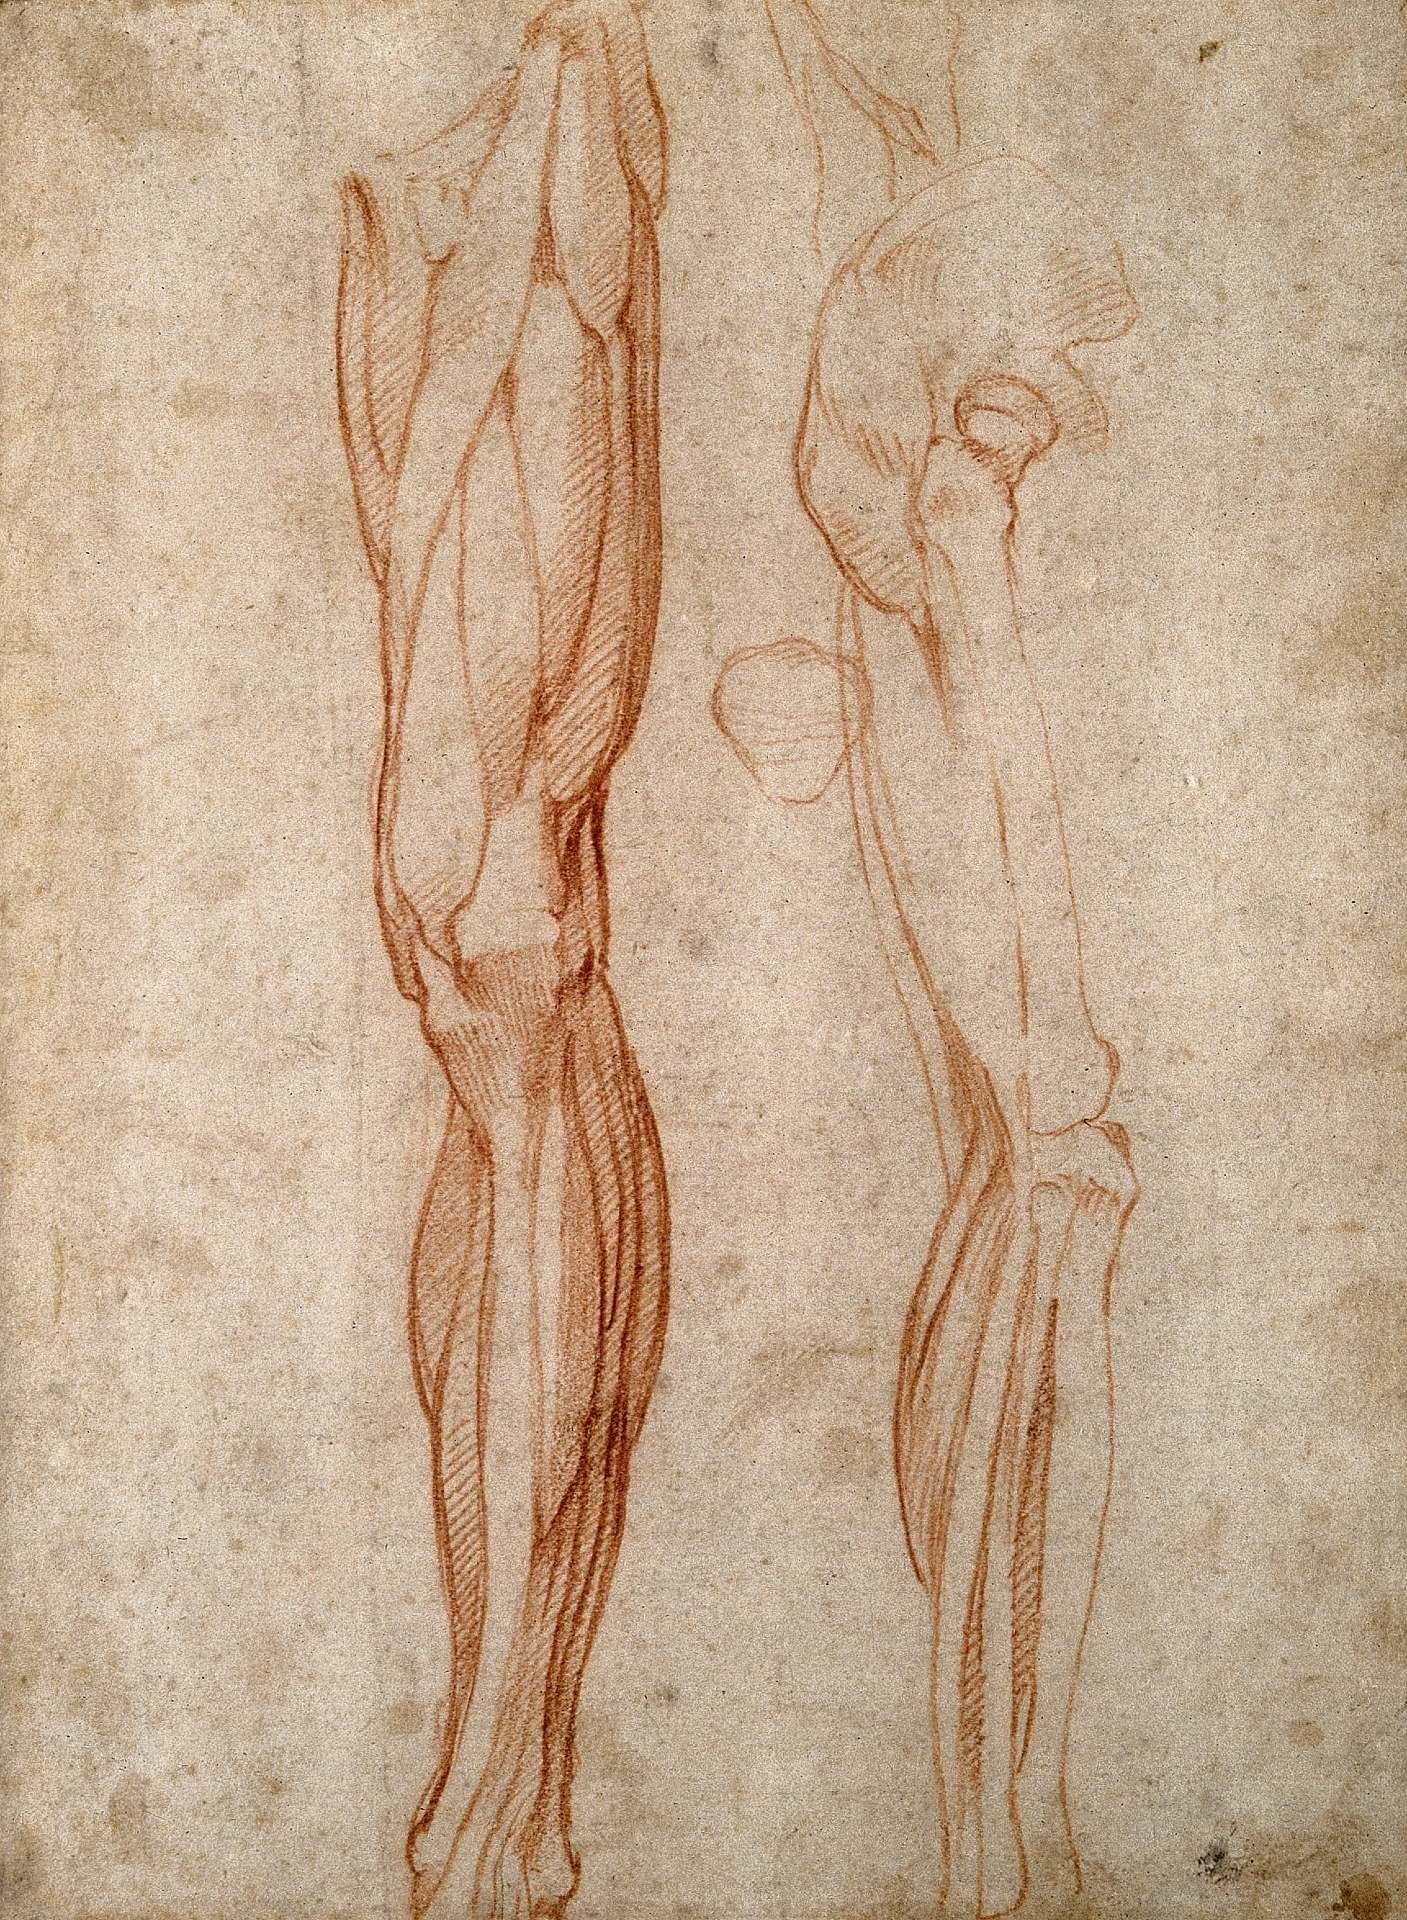 A pencil drawing of leg muscles